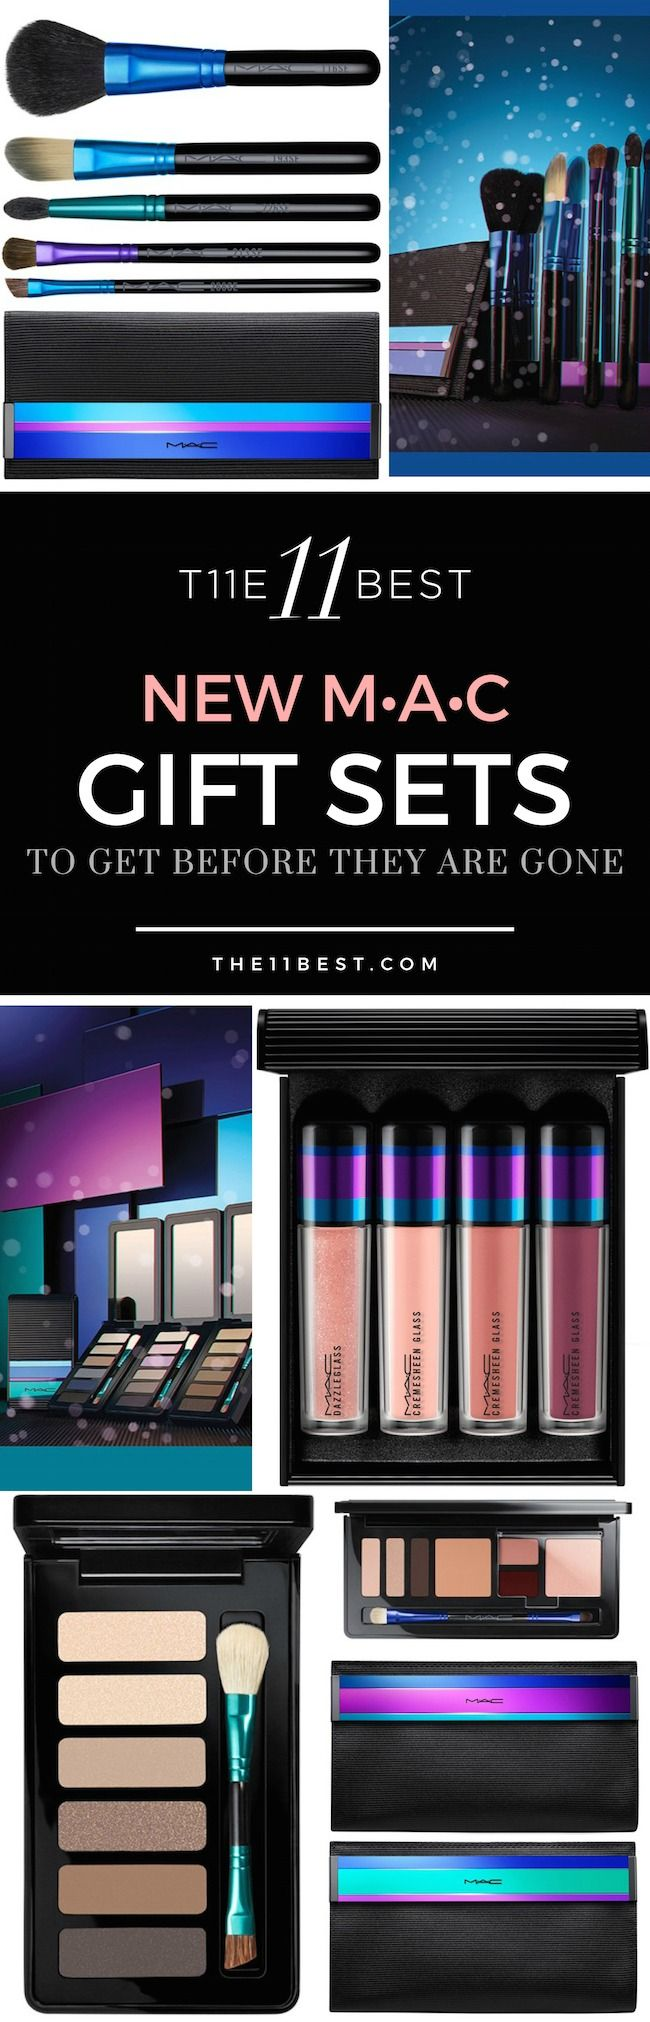 25+ beautiful Mac makeup gift sets ideas on Pinterest | Mac makeup ...